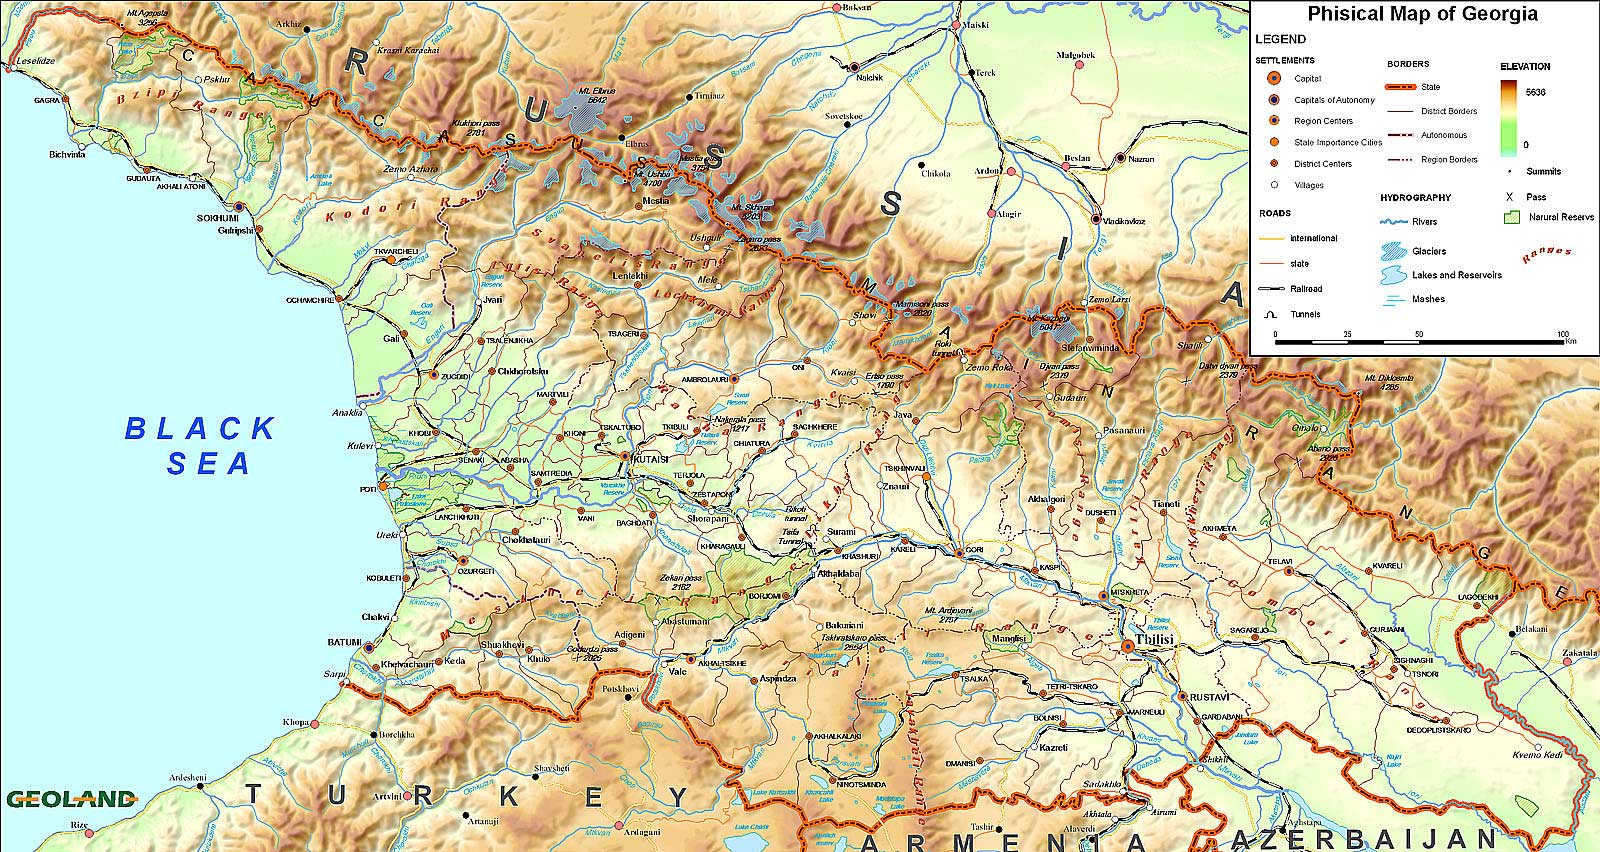 Physical Map Of Georgia Mapsofnet - Georgia physical map